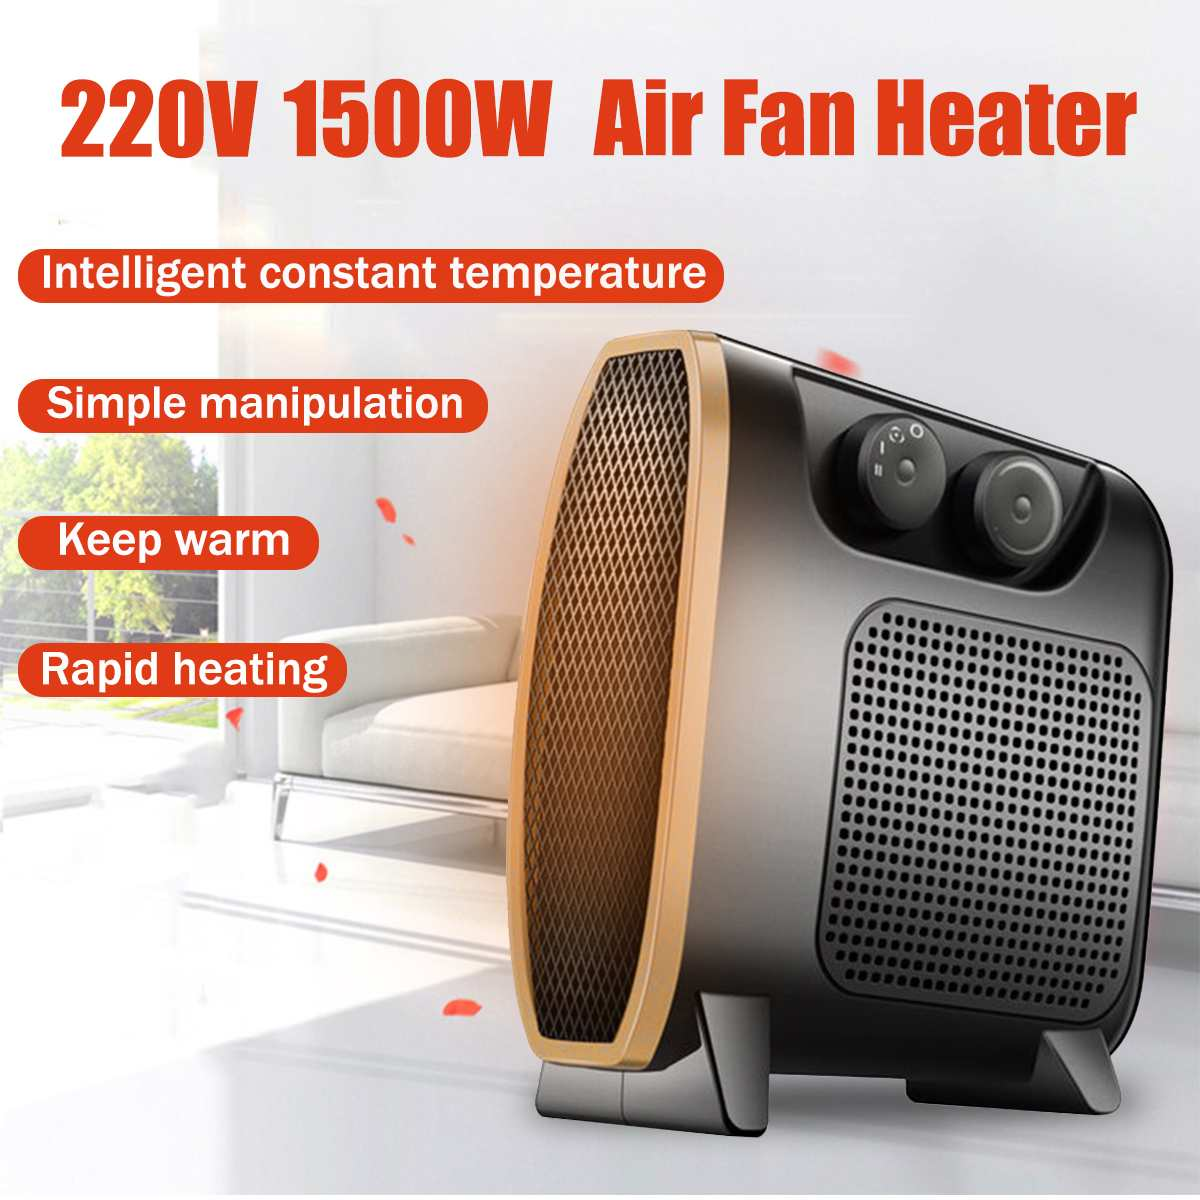 220V 1500W Portable Mini Electric Heater Electric Home Heater Fan Air Warmer Silent Home Office Heater air cooler handy